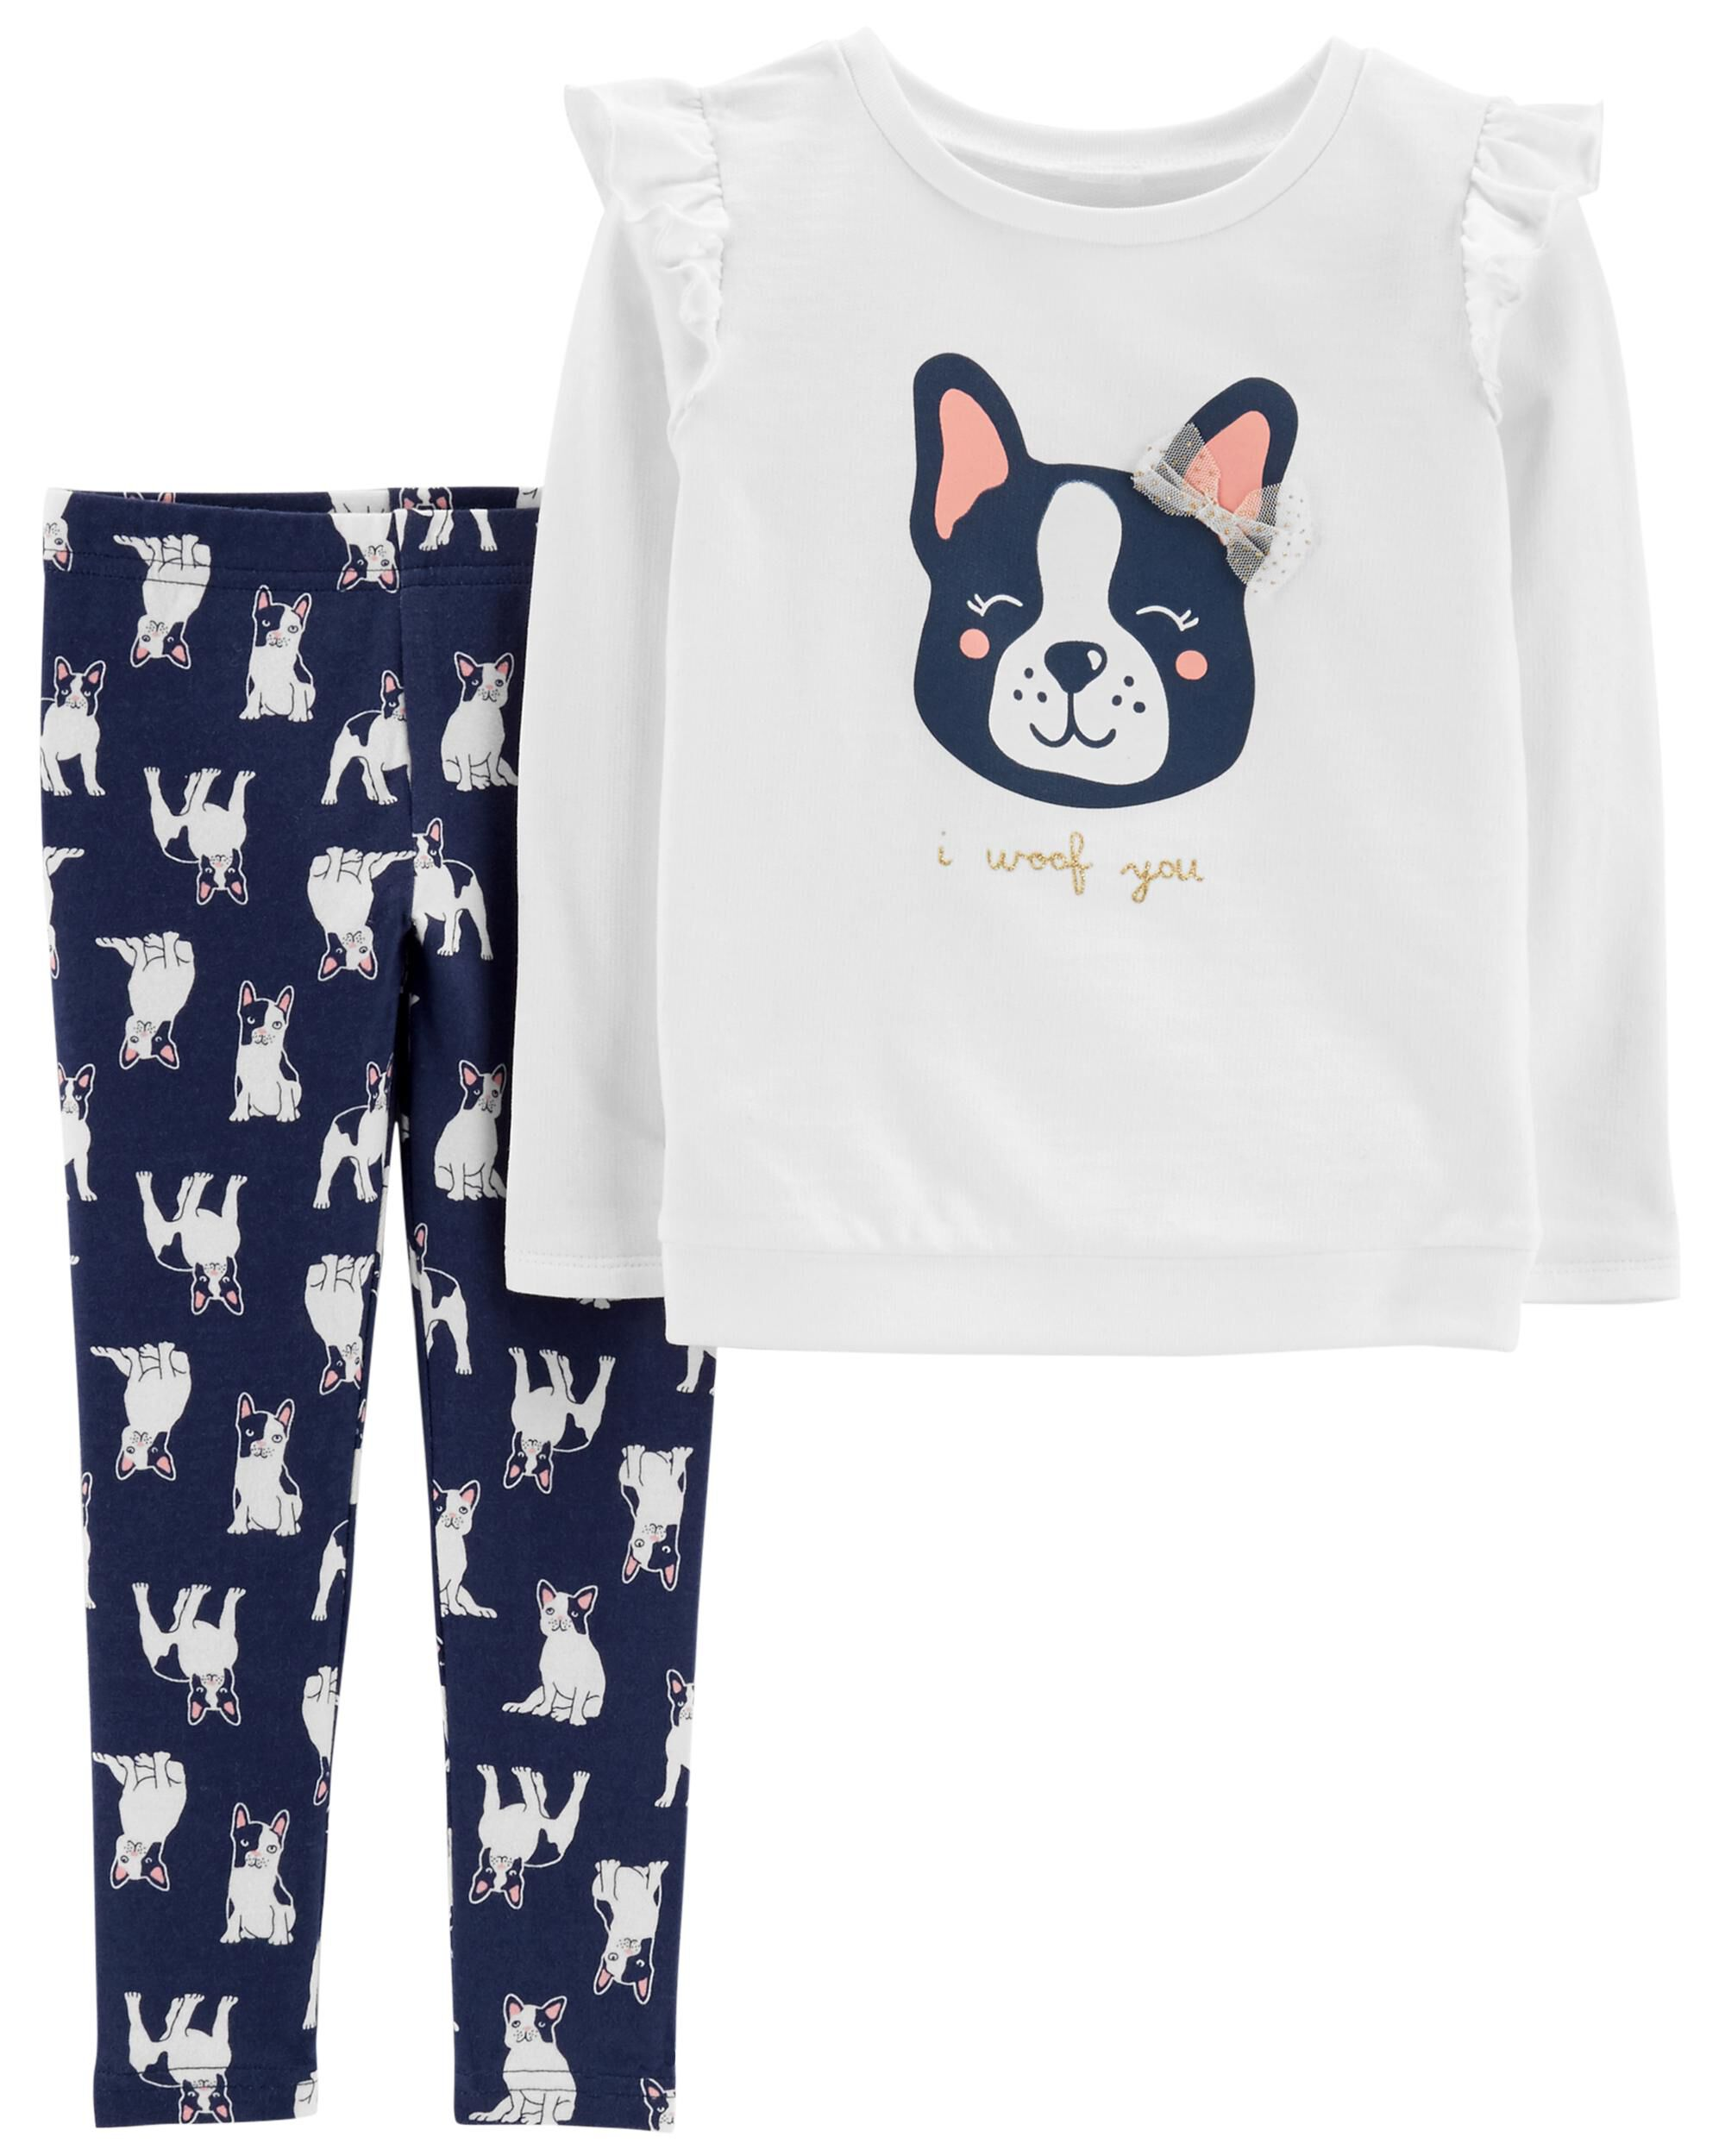 French Bulldog And Gifts Pajama Pants SPECIAL SPRING SALE